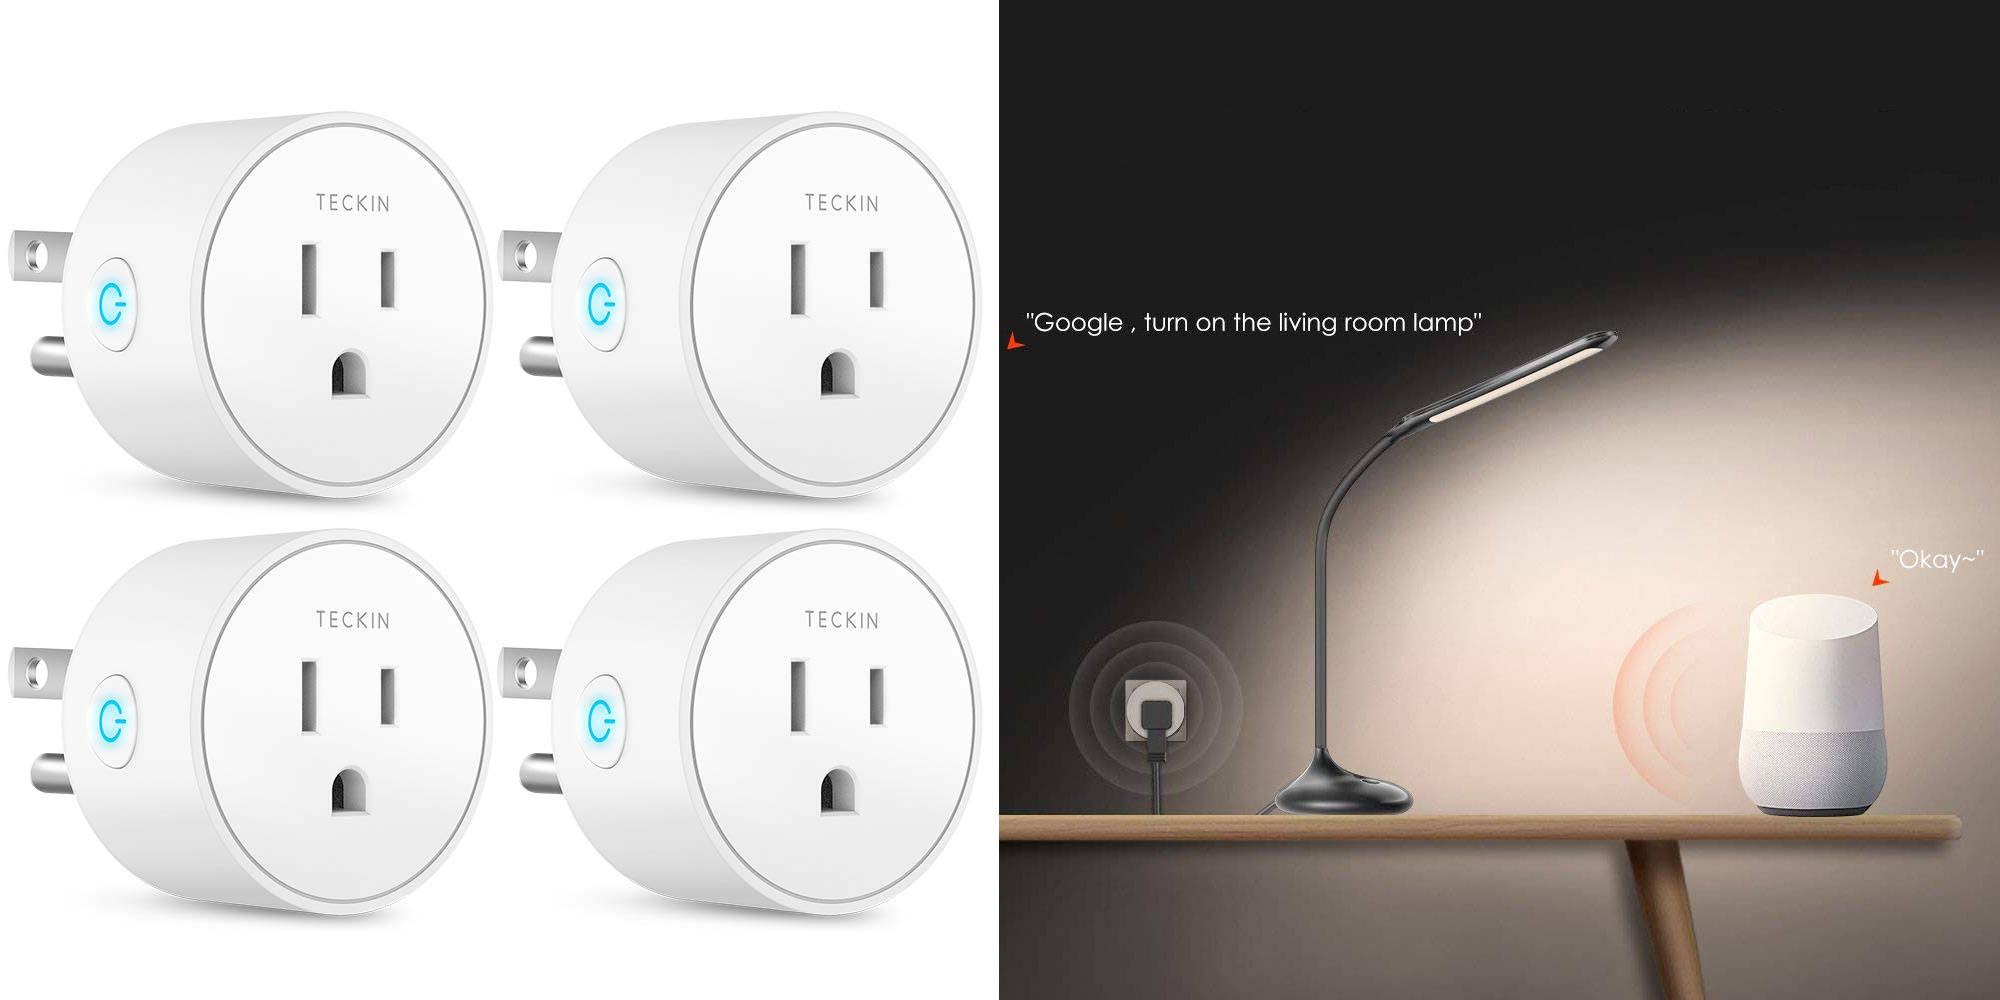 Command 4 devices in your home w/ this multi-pack of smart plugs for less than $7 each